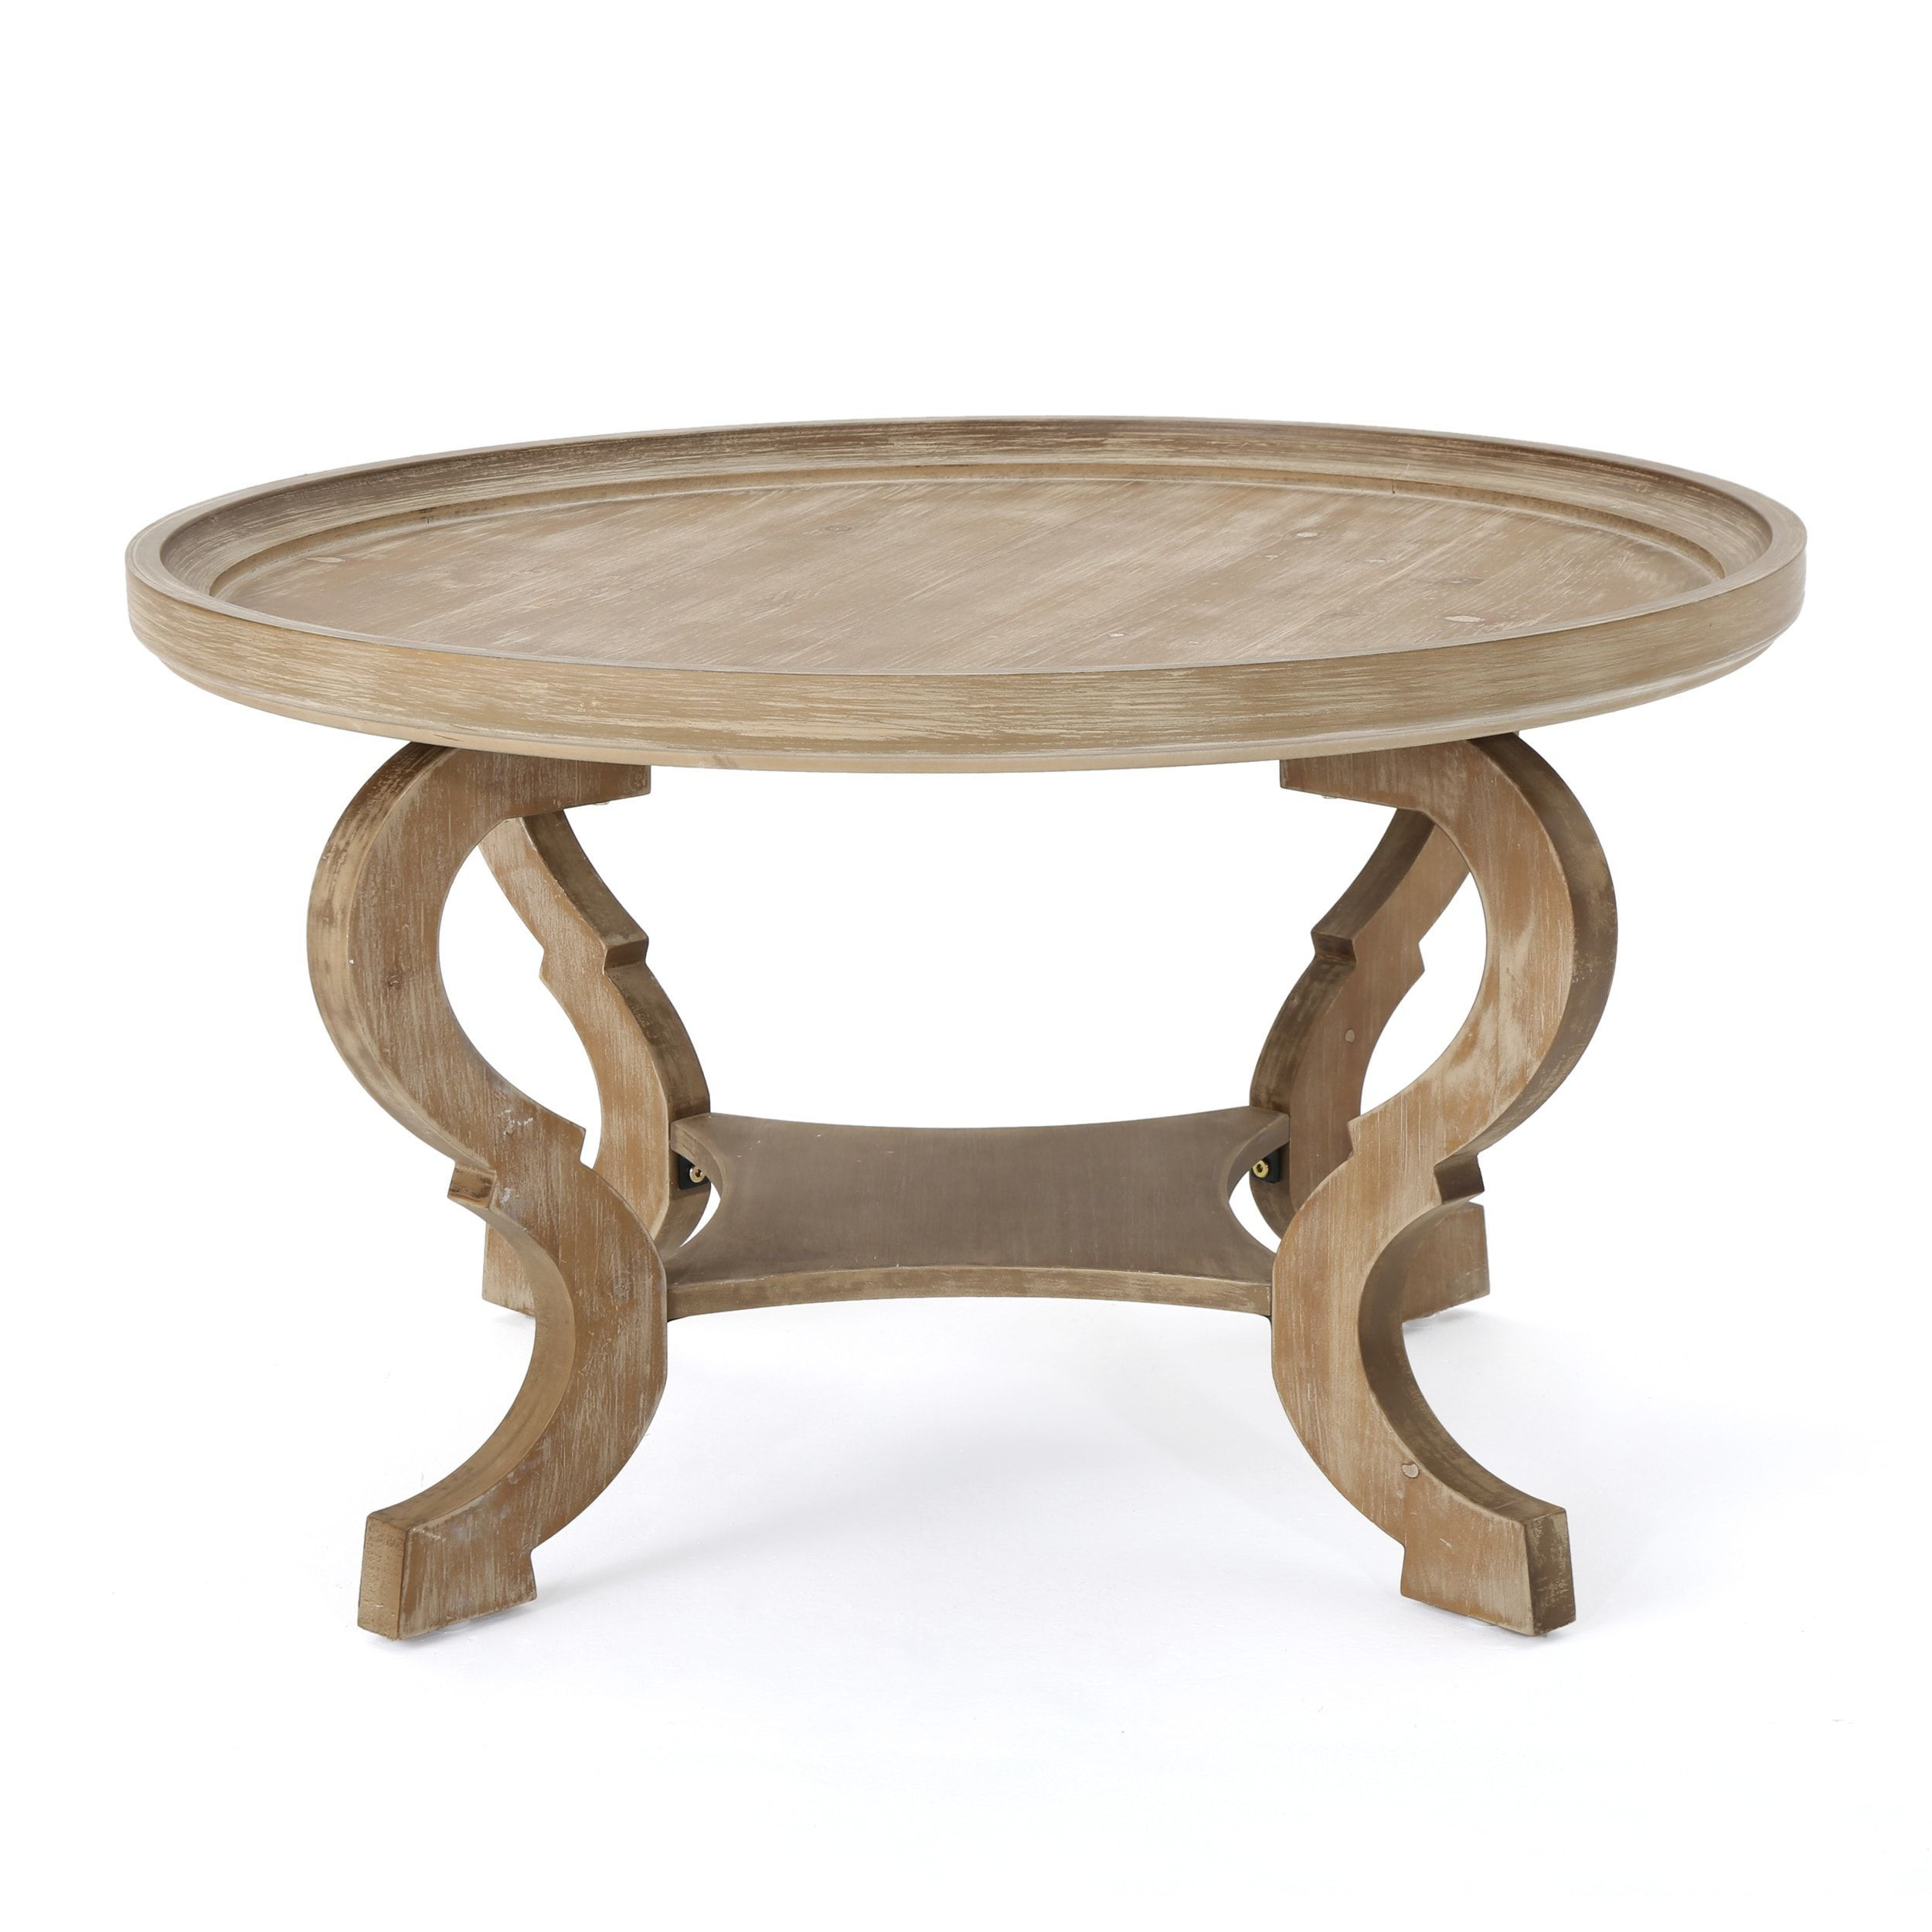 Overstock Com Online Shopping Bedding Furniture Electronics Jewelry Clothing More Circular Coffee Table Round Wood Coffee Table Coffee Table [ 2500 x 2500 Pixel ]